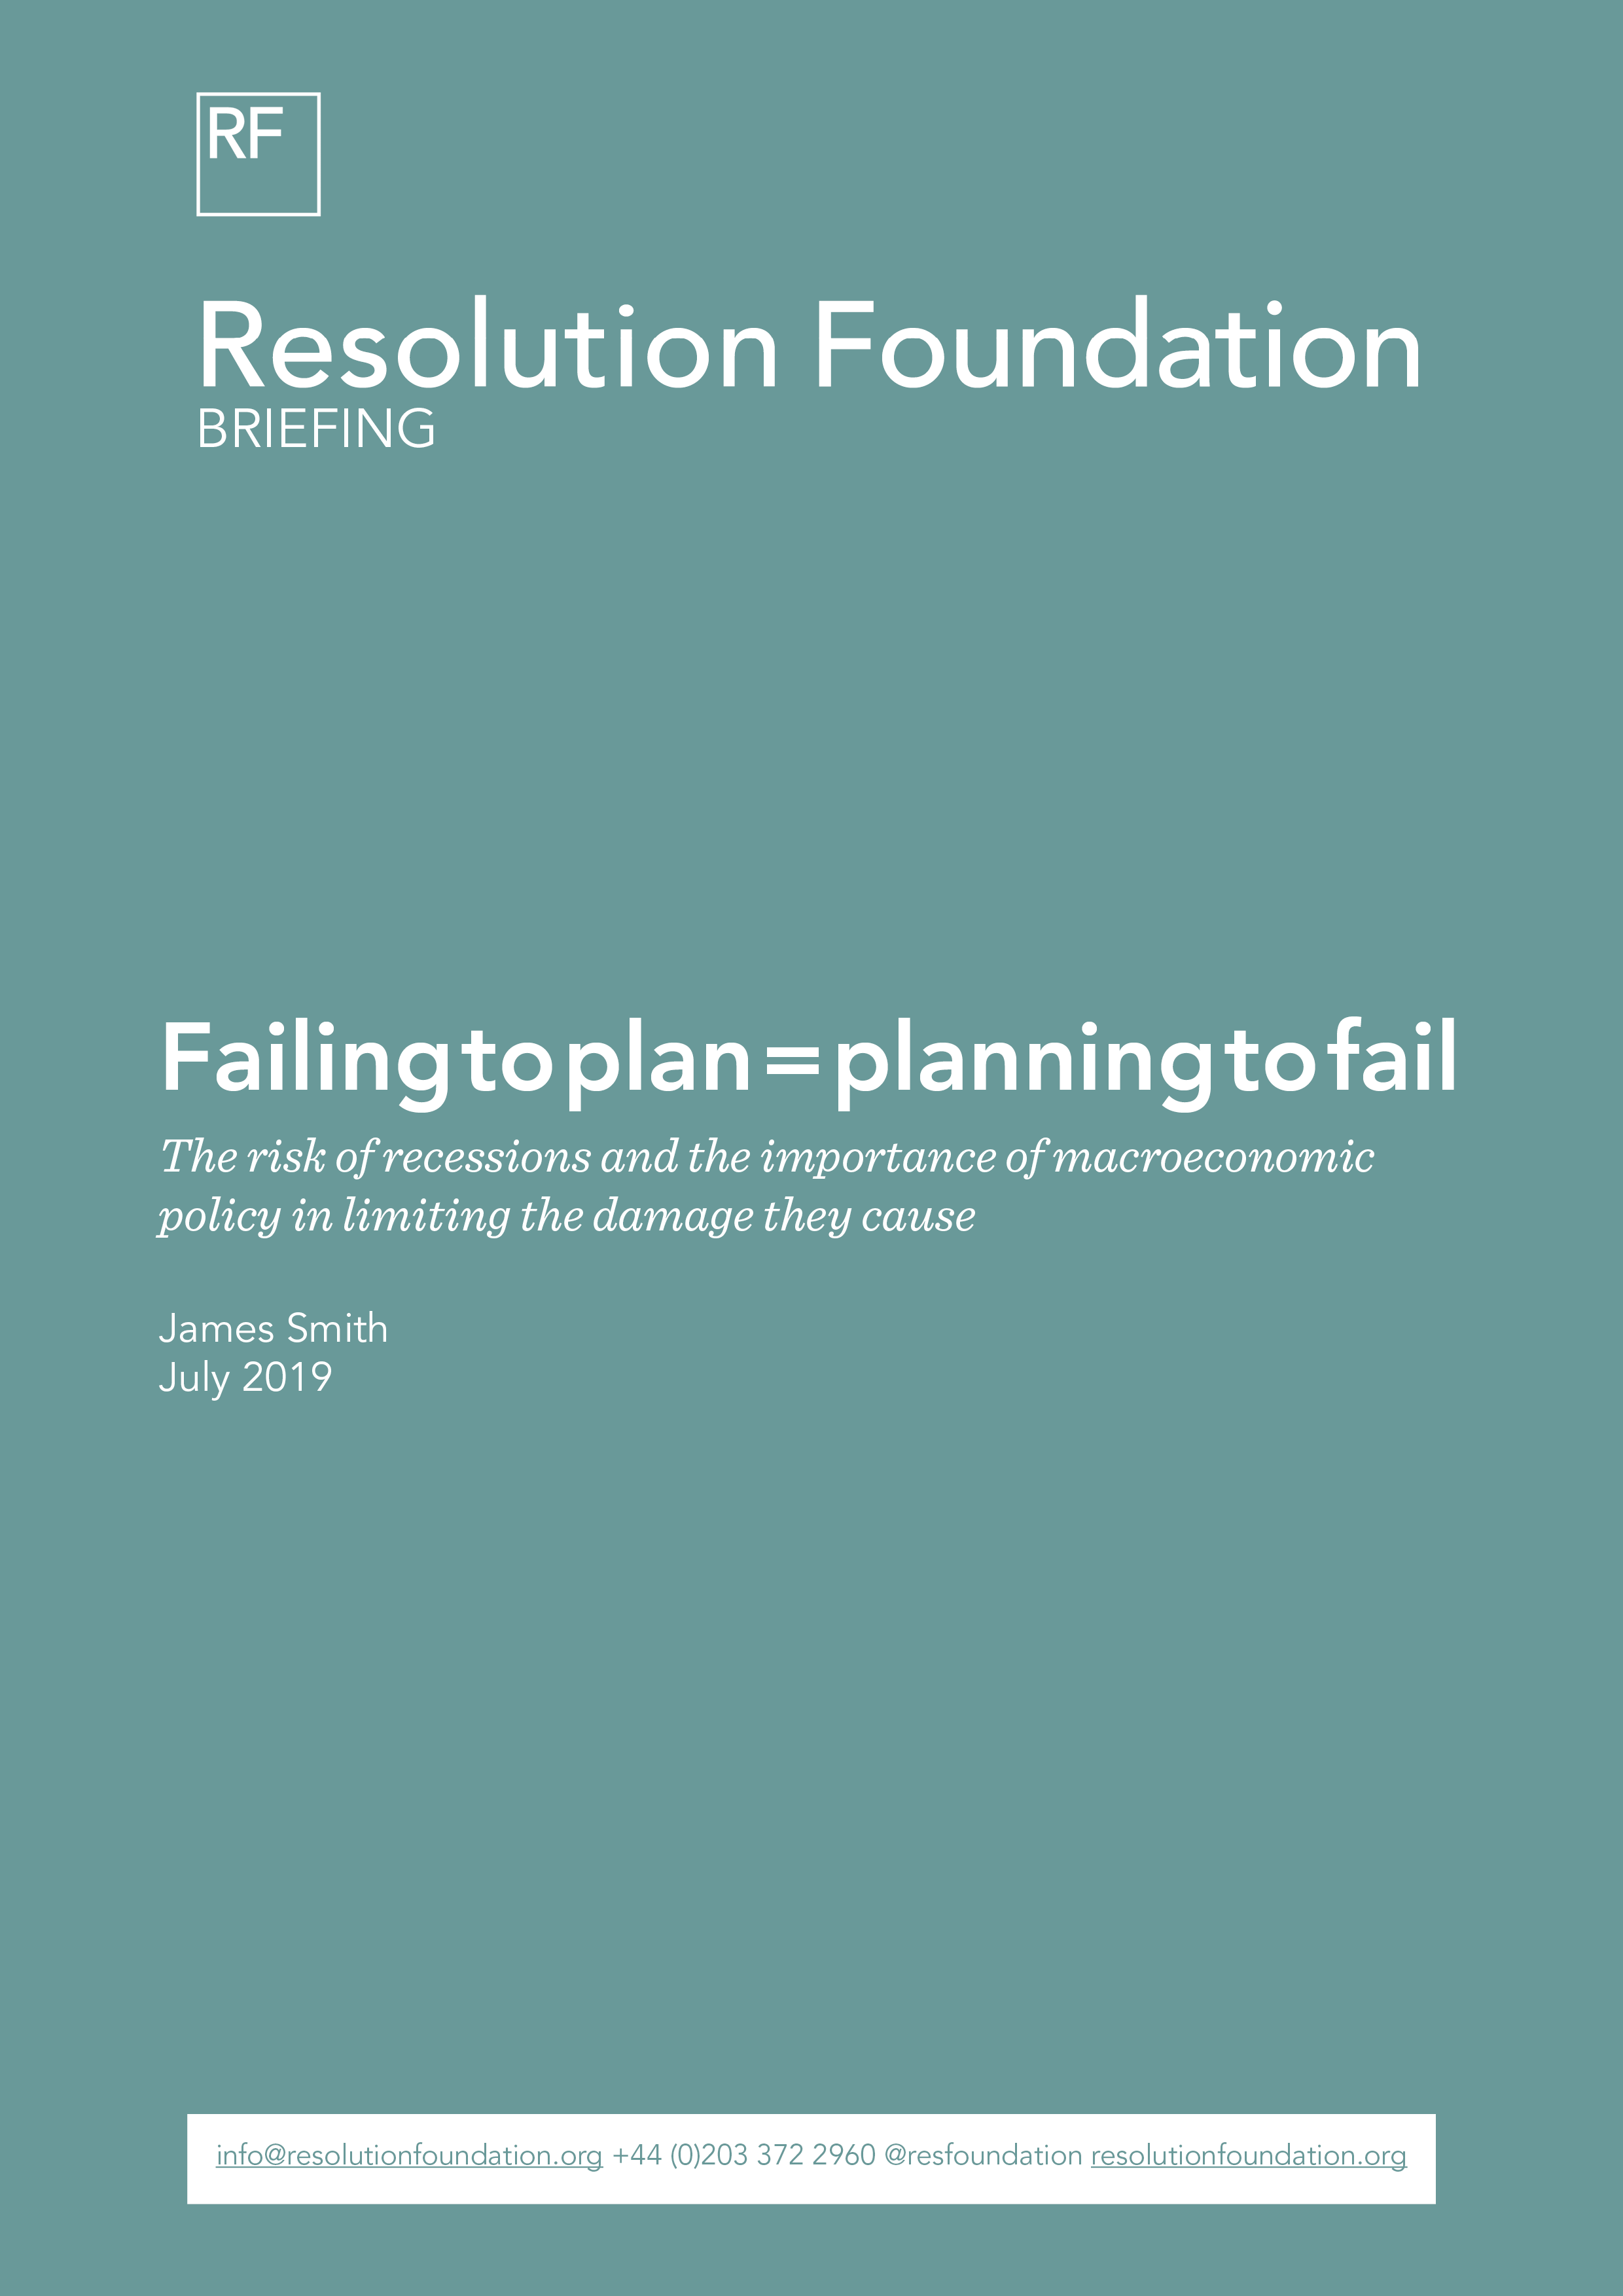 https://www.resolutionfoundation.org/app/uploads/2019/07/Failing-to-plan-cover.png